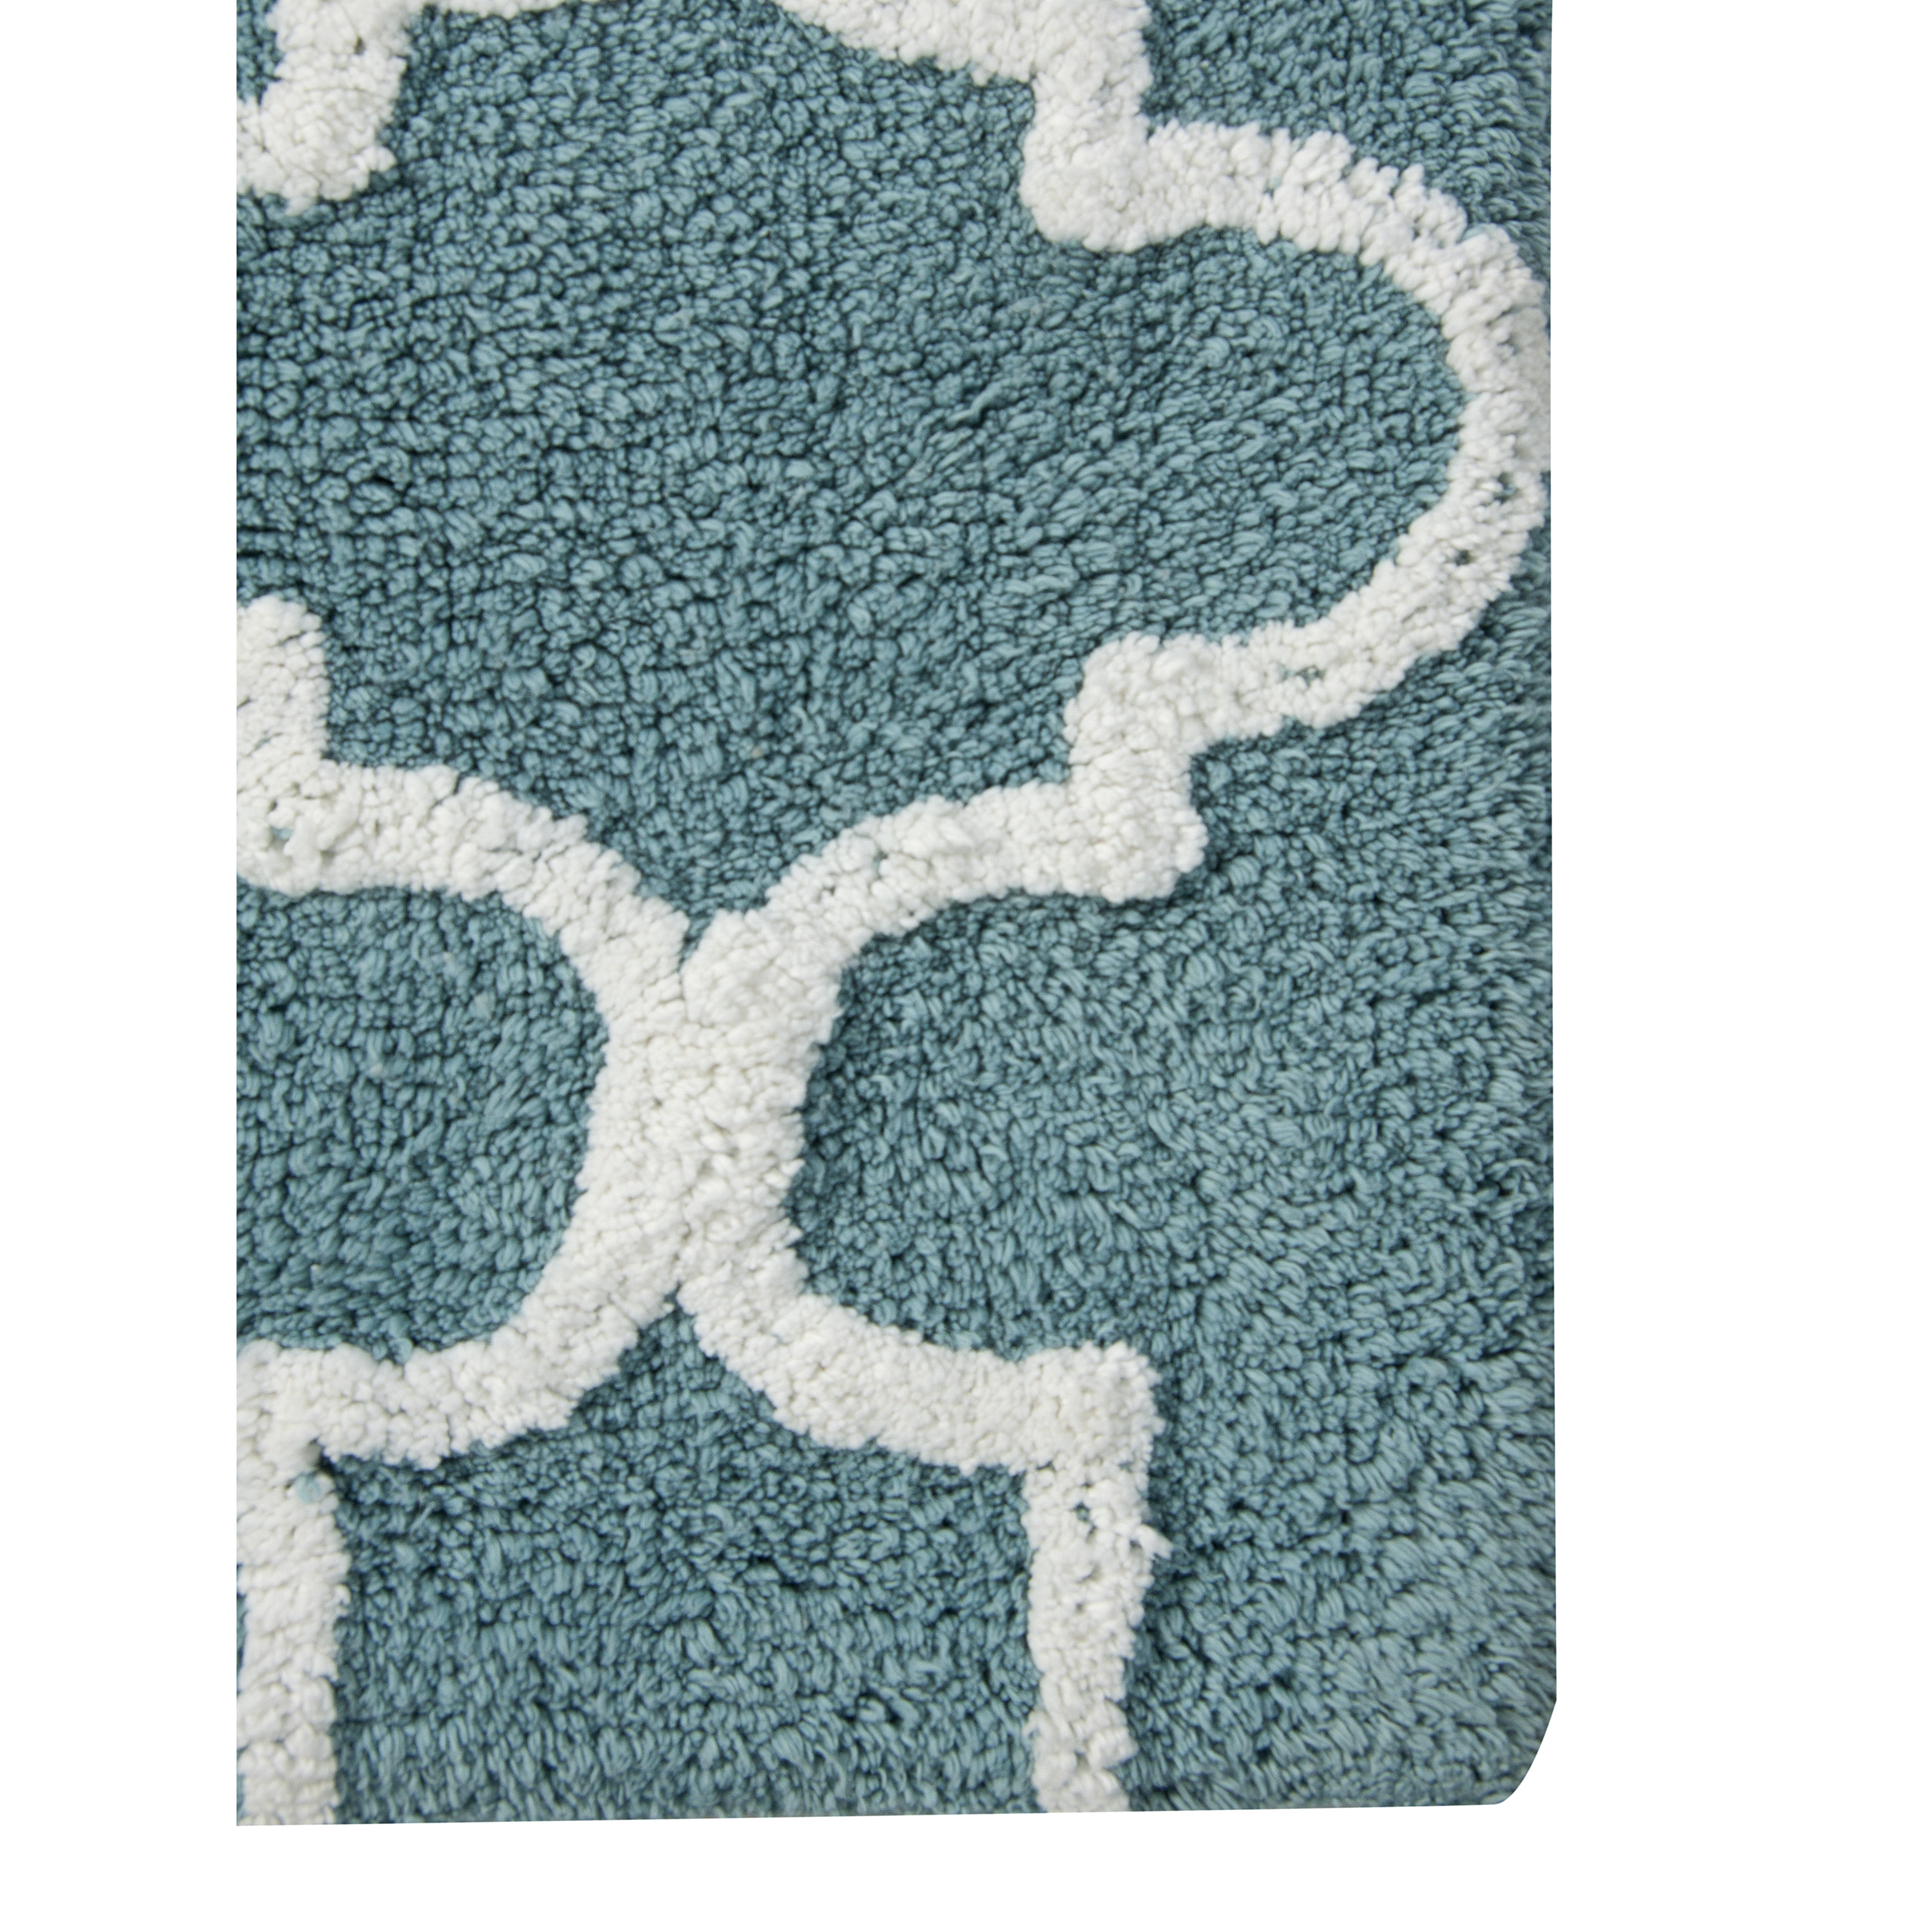 Rubber Backed Cotton Bath Mats